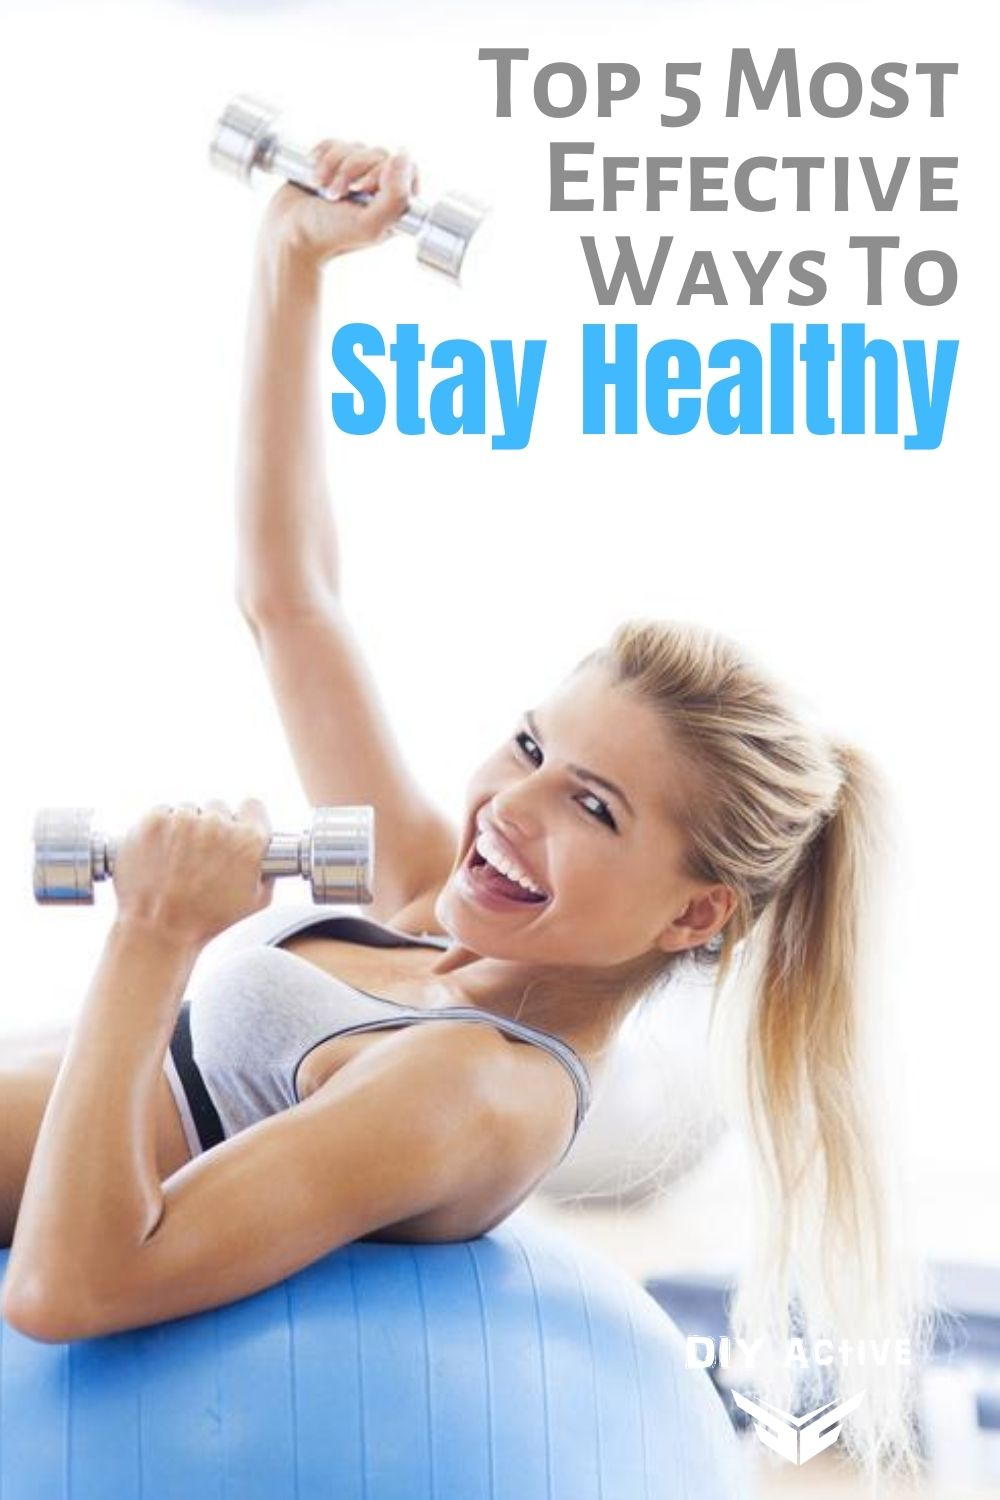 Top 5 Most Effective Ways To Stay Healthy